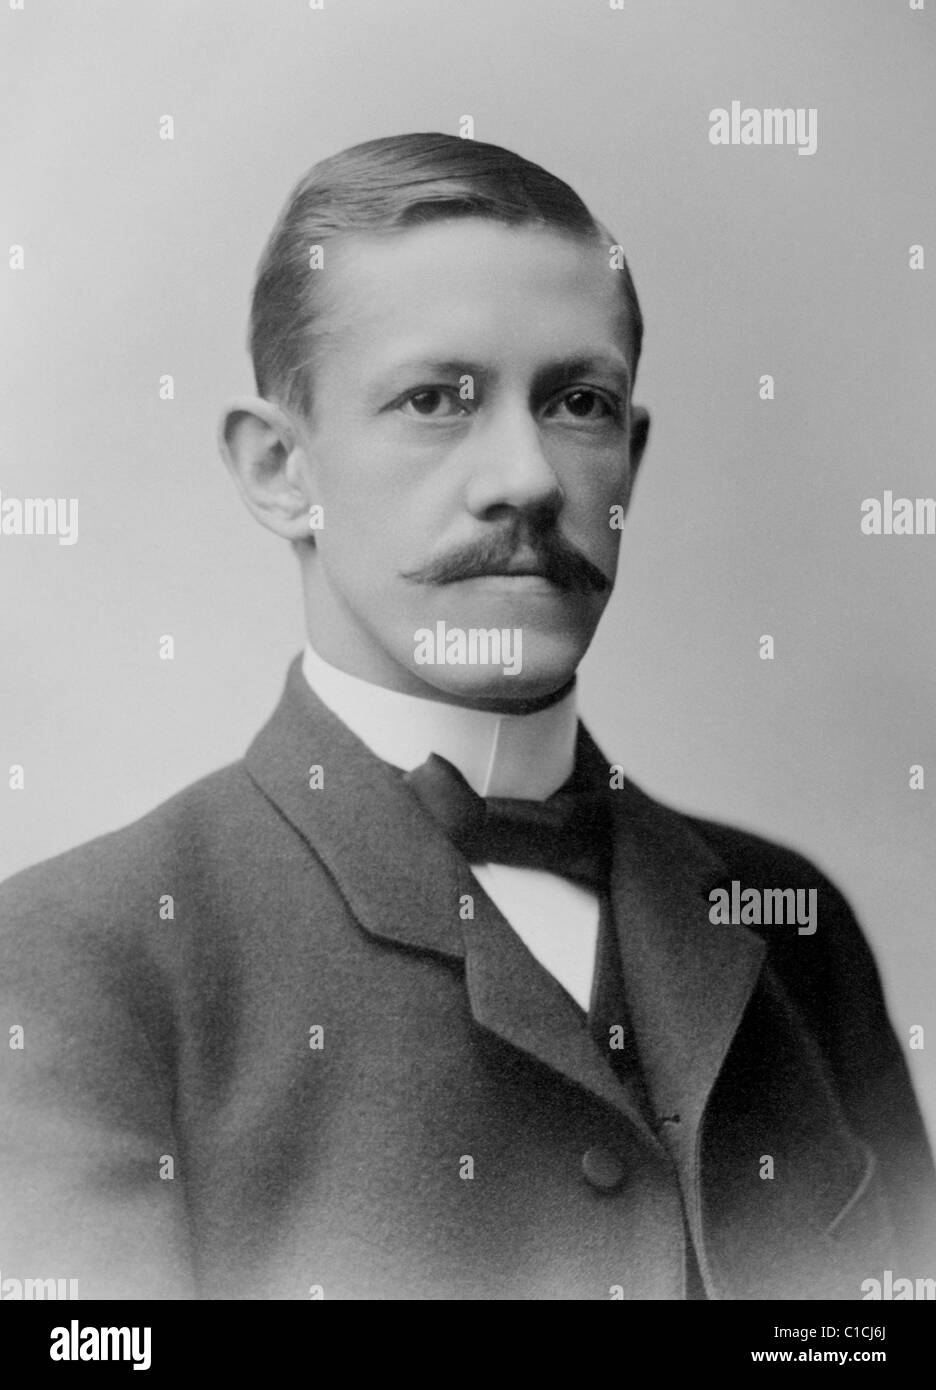 Swedish ophthalmologist Allvar Gullstrand (1862 - 1930) - winner of the Nobel Prize in Physiology or Medicine in - Stock Image